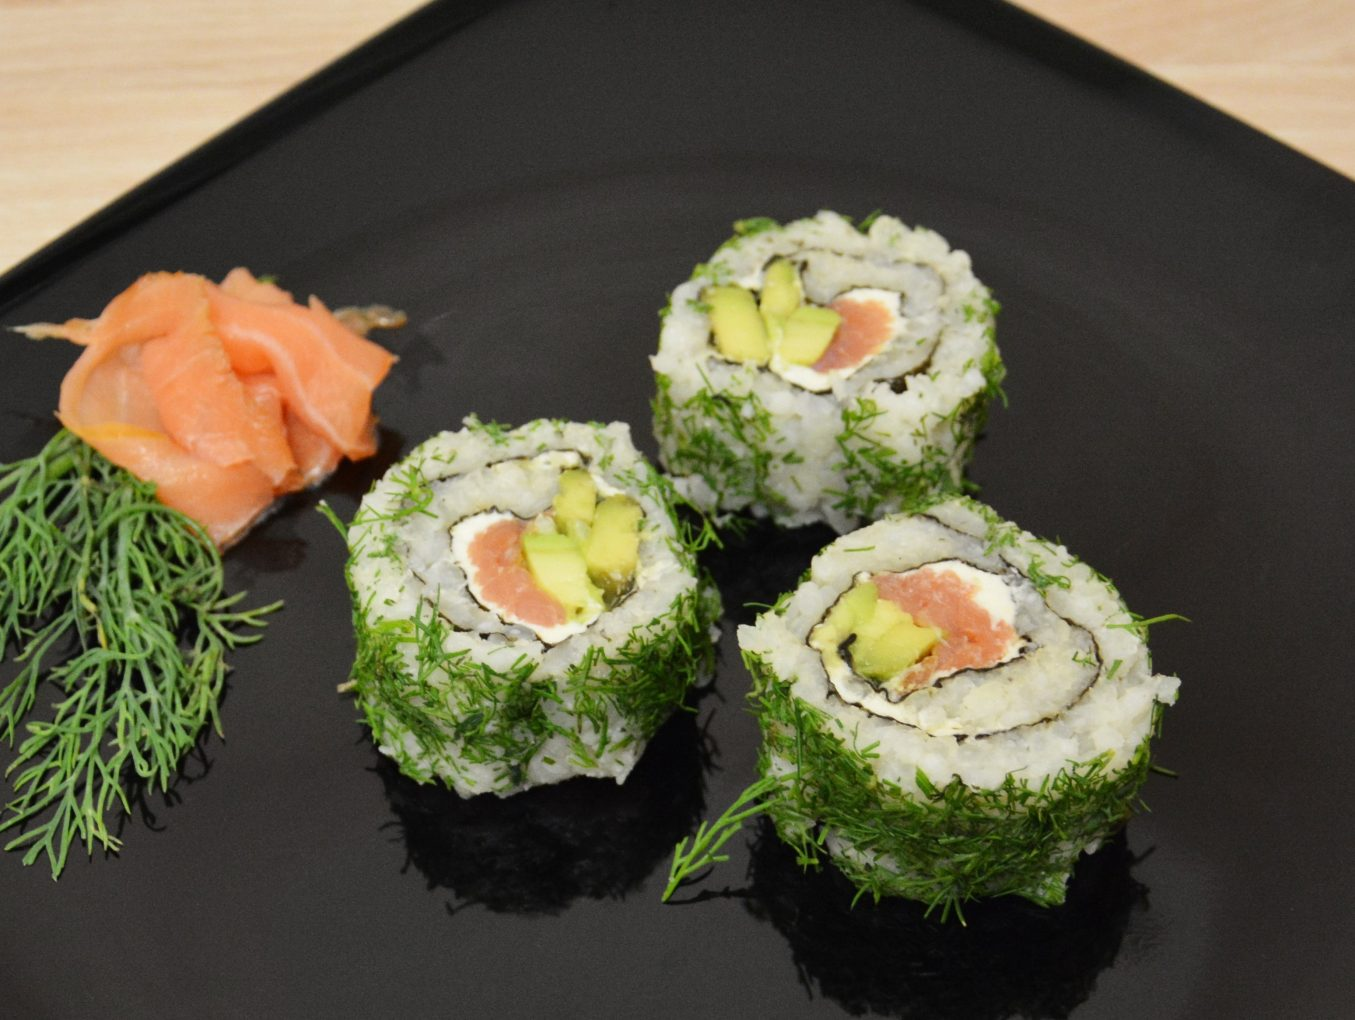 Lachs-Avocado Inside-out-Rolle